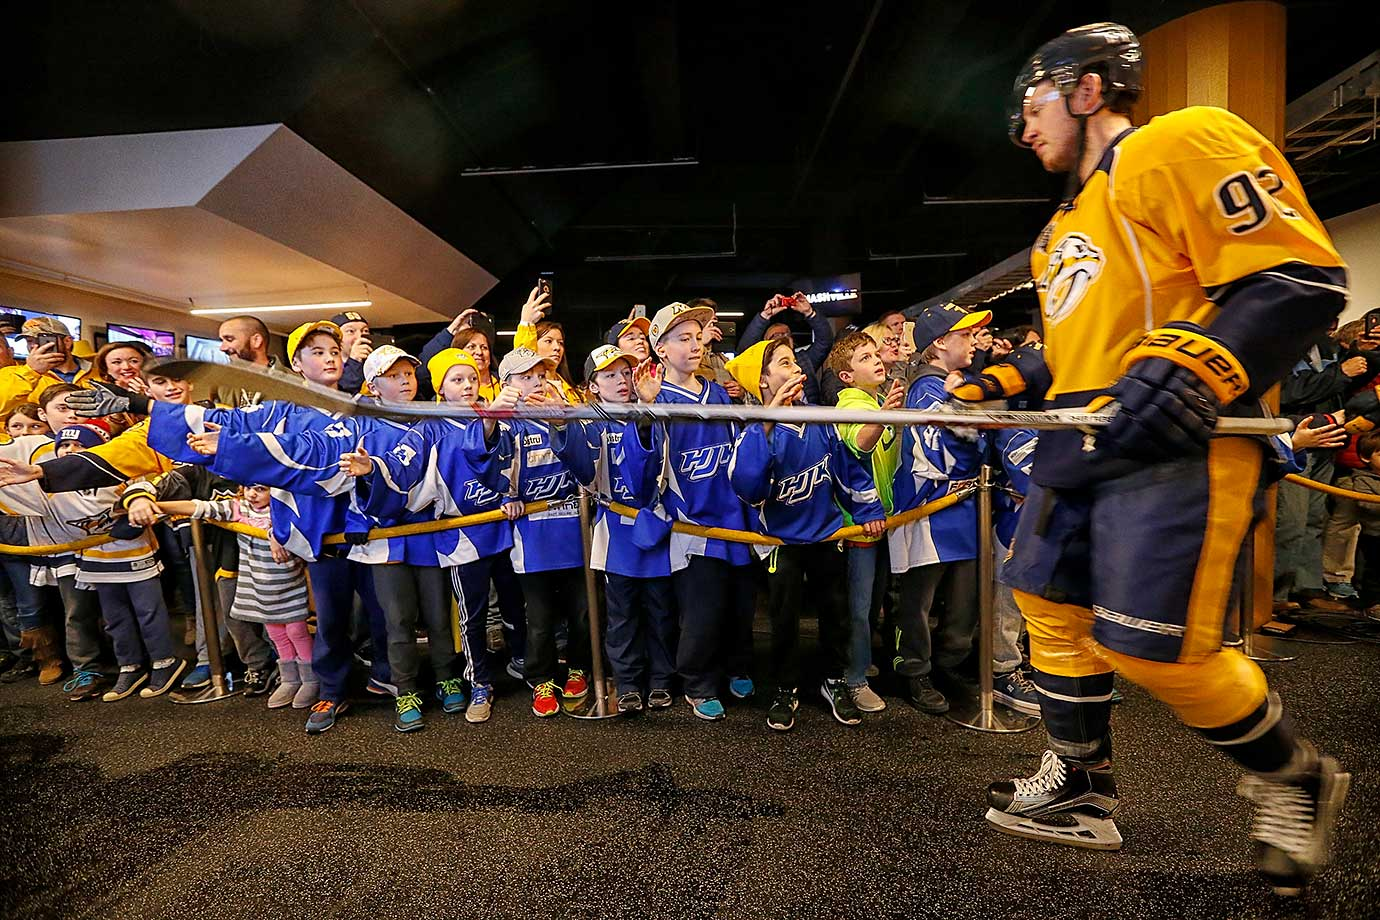 Young fans greet Ryan Johansen of the Nashville Predators as he walks to the ice for a game against Boston.